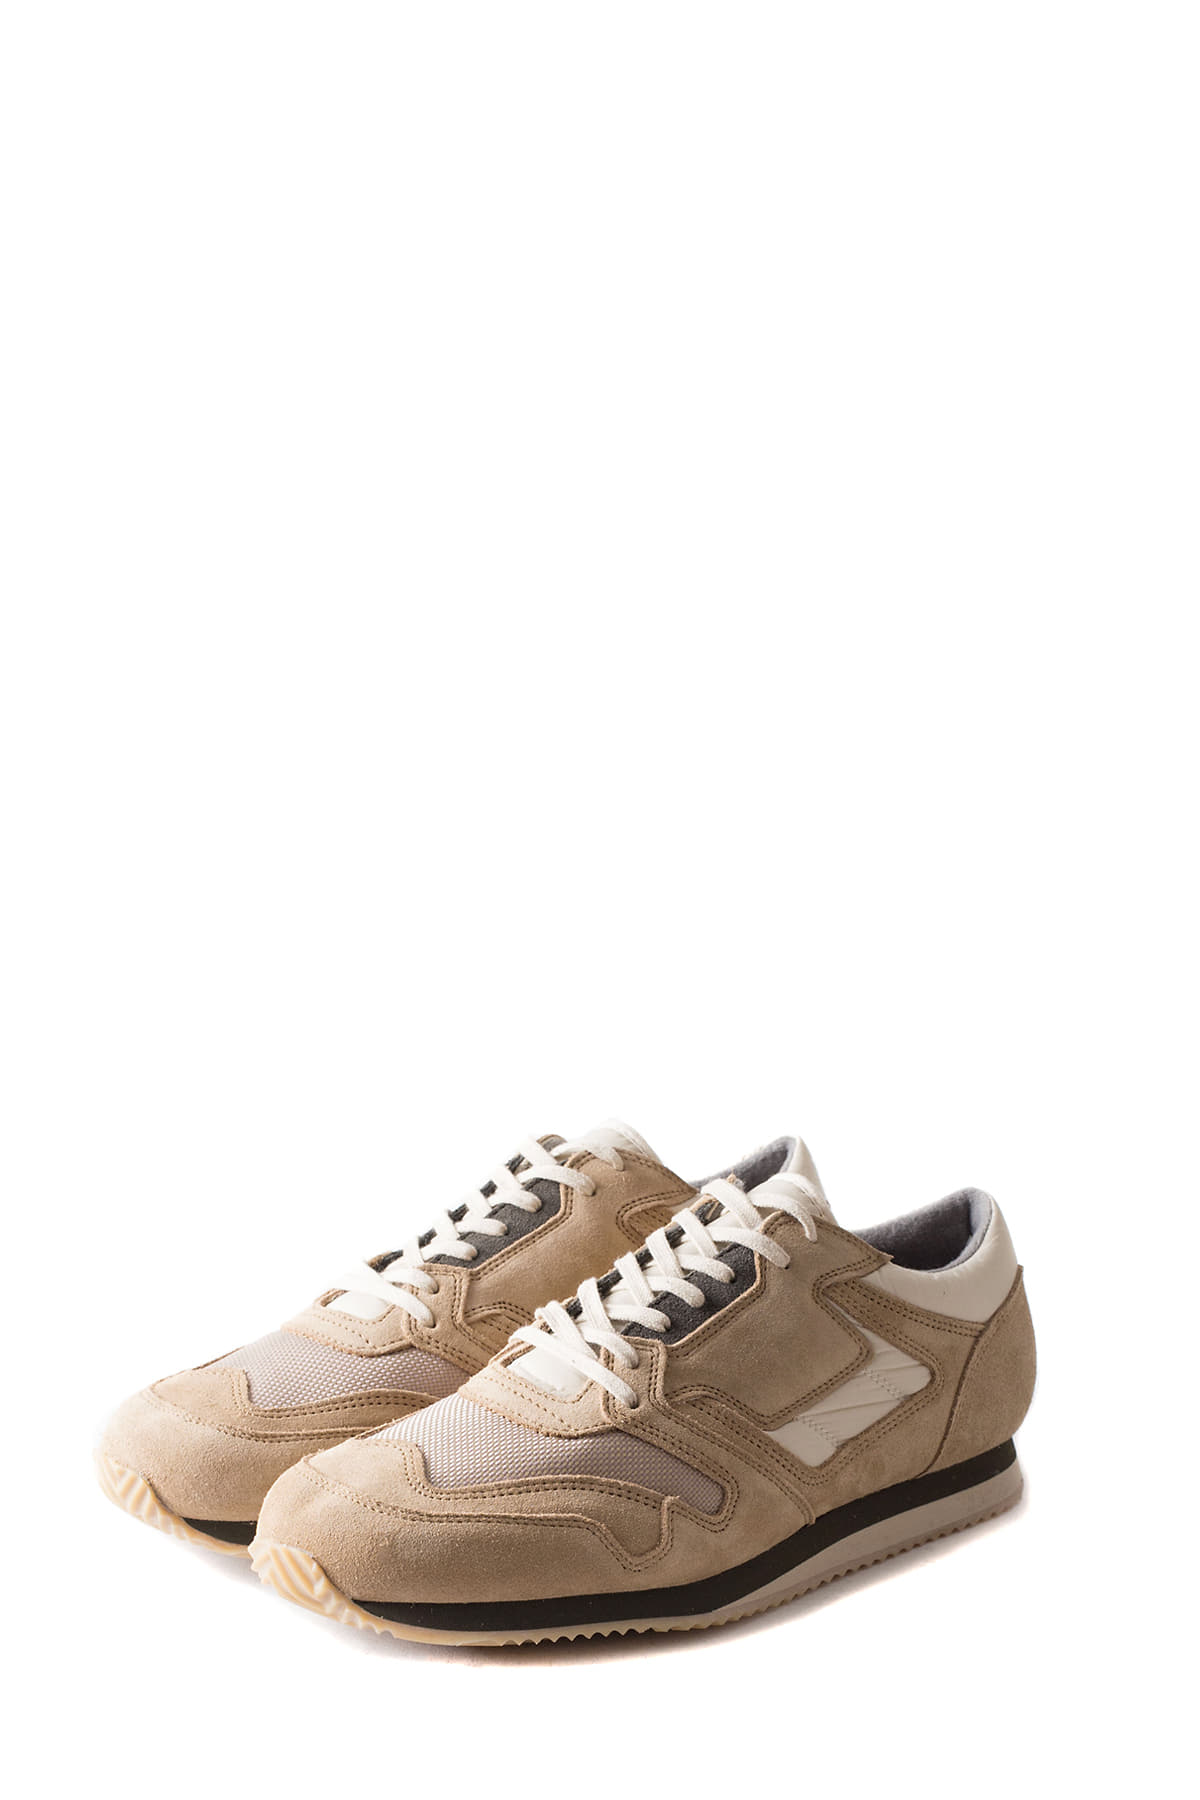 REPRODUCTION OF FOUND : British Military Trainer (Beige)